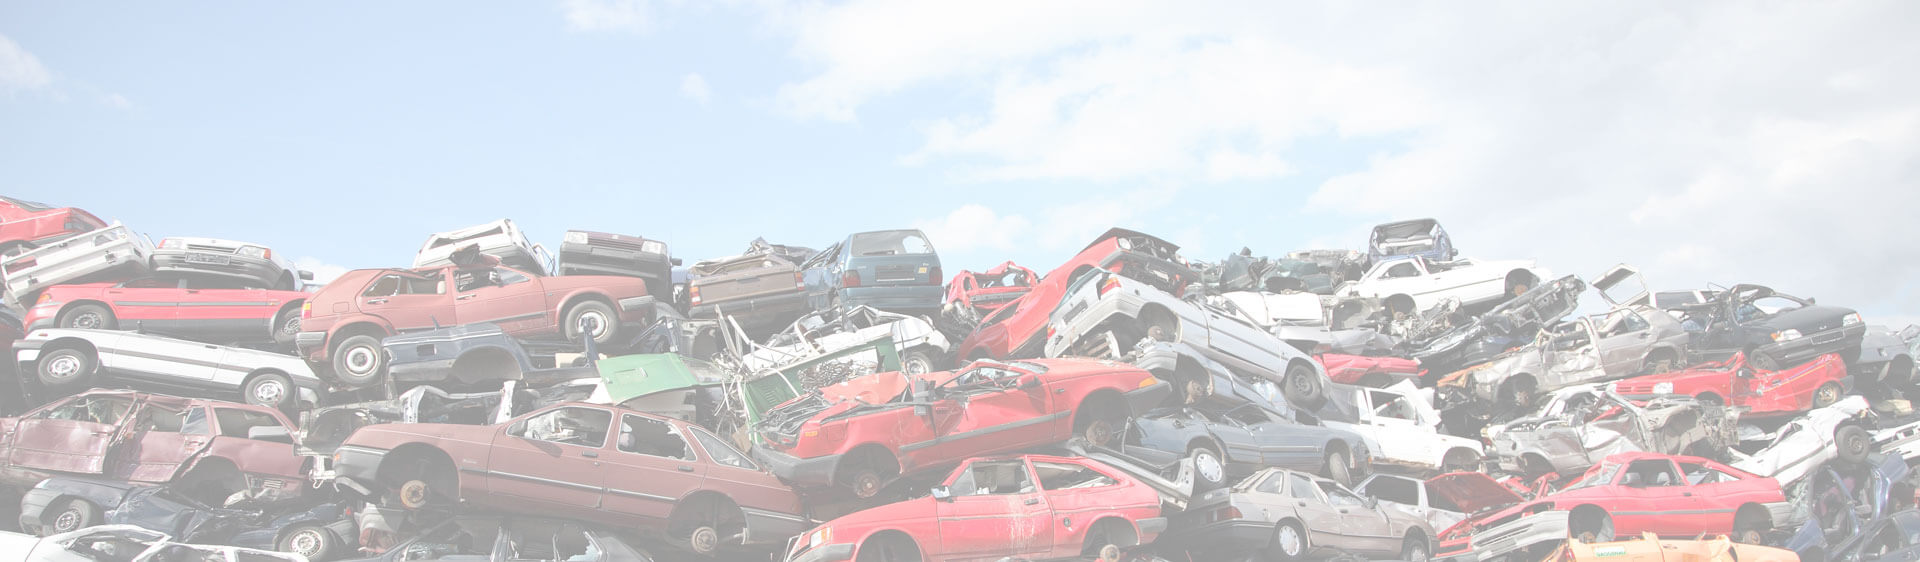 Gosport Cash For Junk Cars, Cash For Cars and Auto Salvage